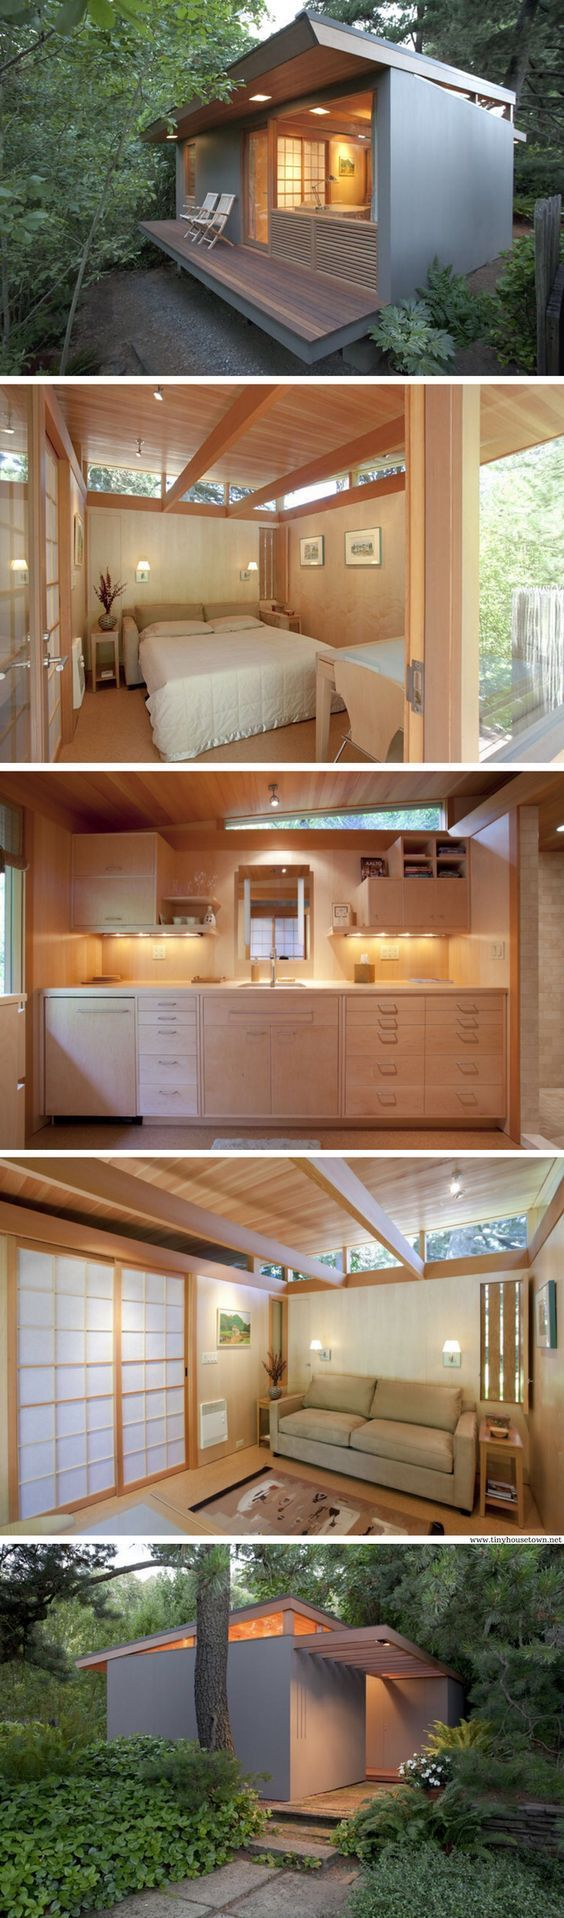 The Teahouse, Oregon, tiny house, (236 sq ft). Designed and converted from an old shed by architect, Pietro Belluschi in 1947, restored 2011 by Antony Belluschi.